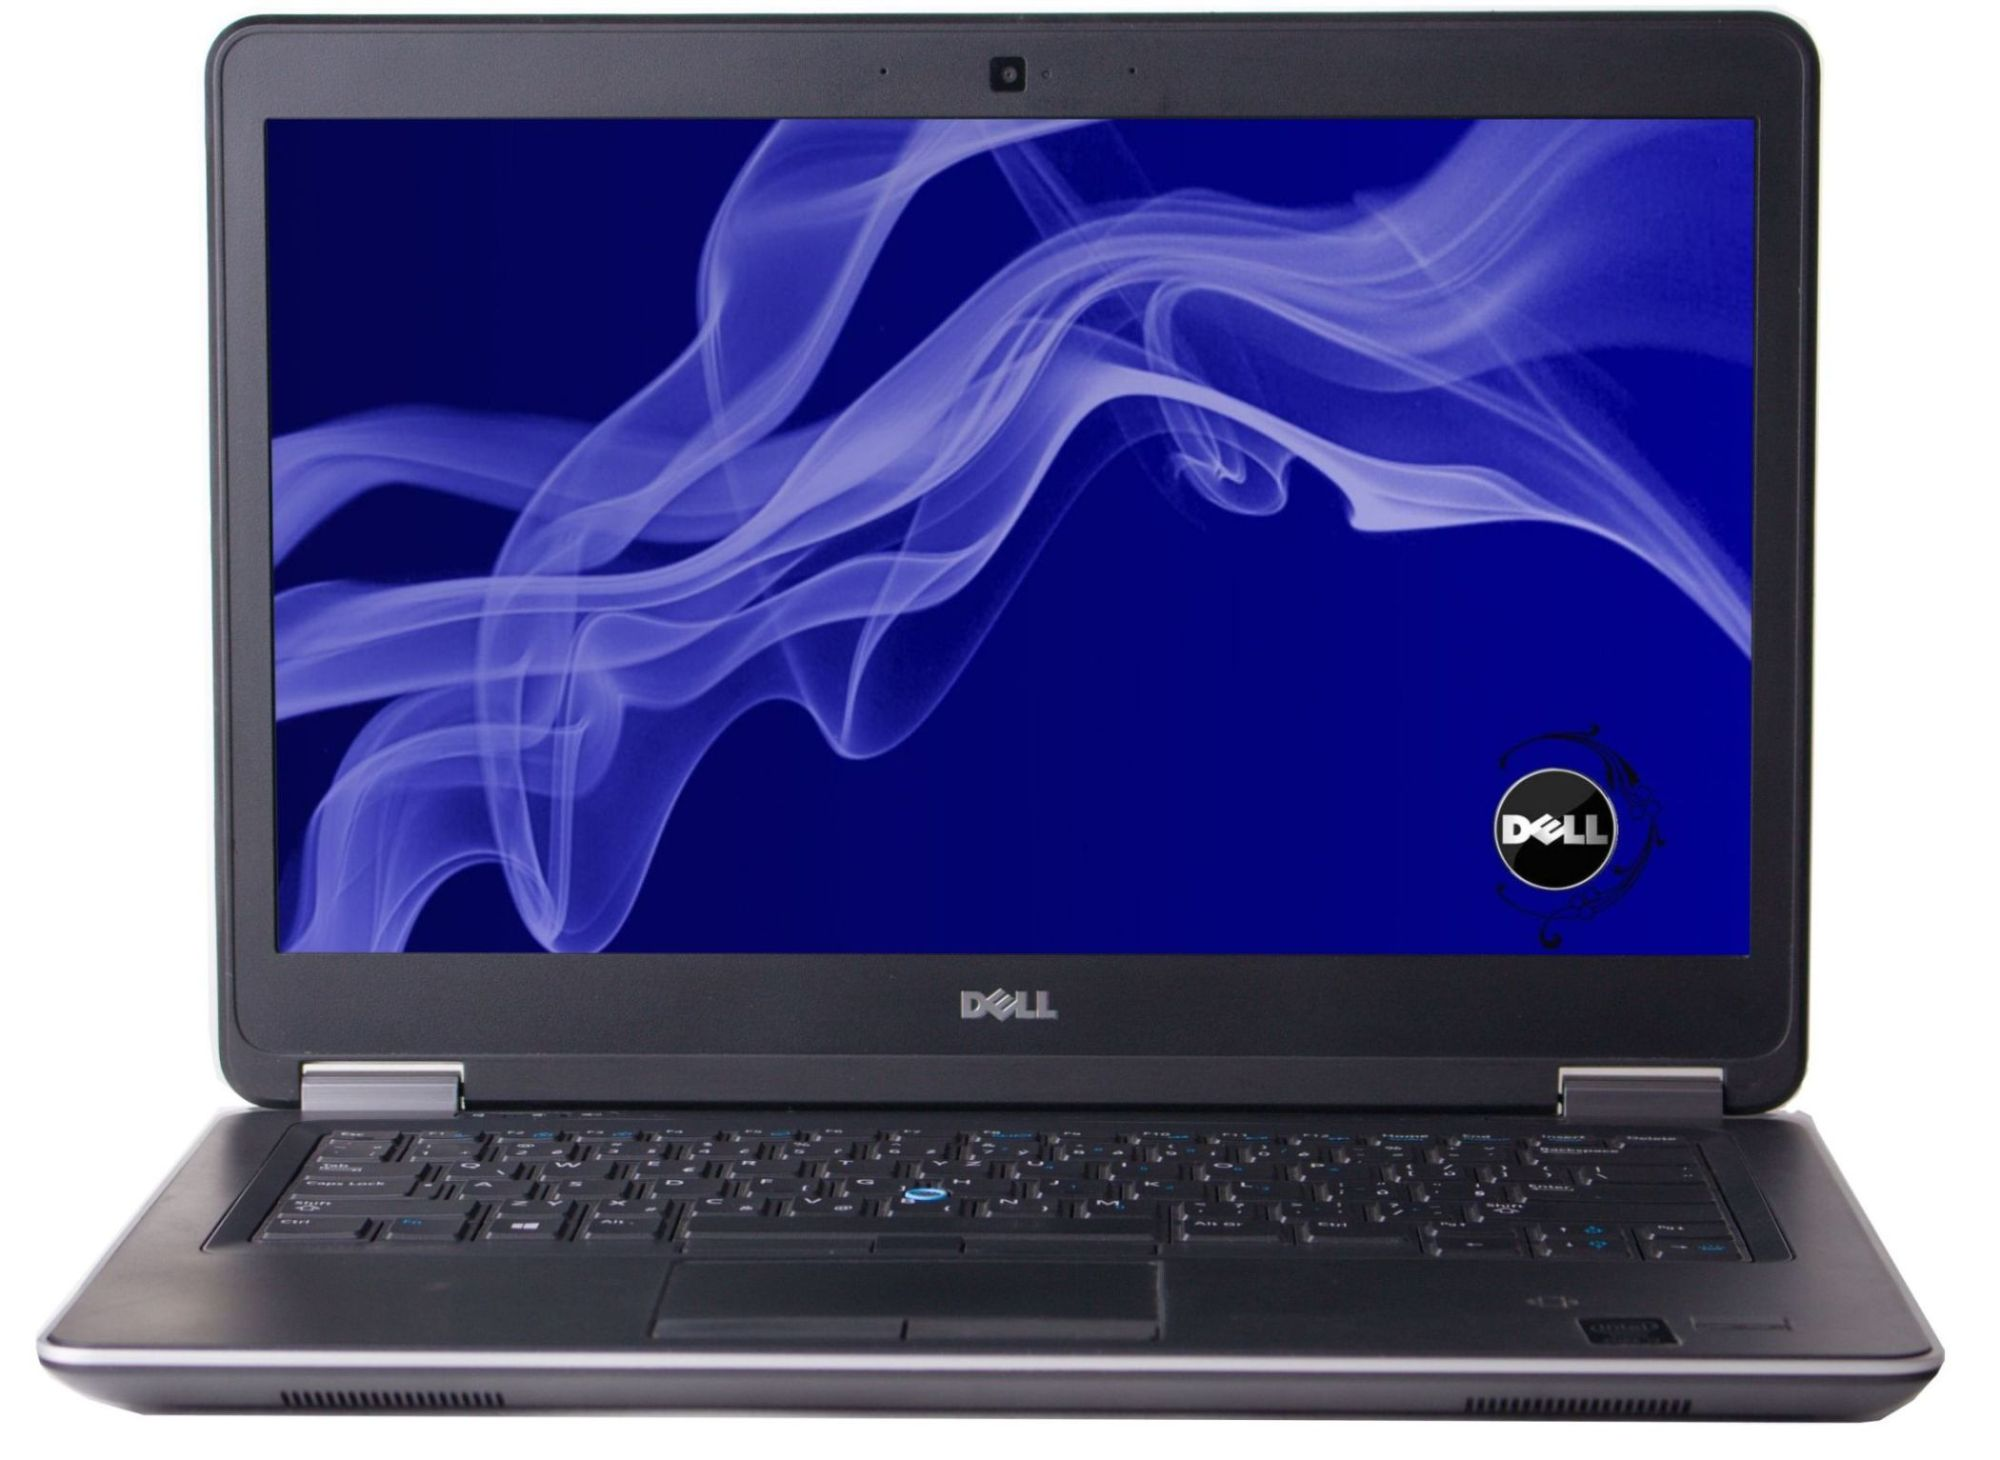 Dell Latitude E7440 Core i5 SSD 128